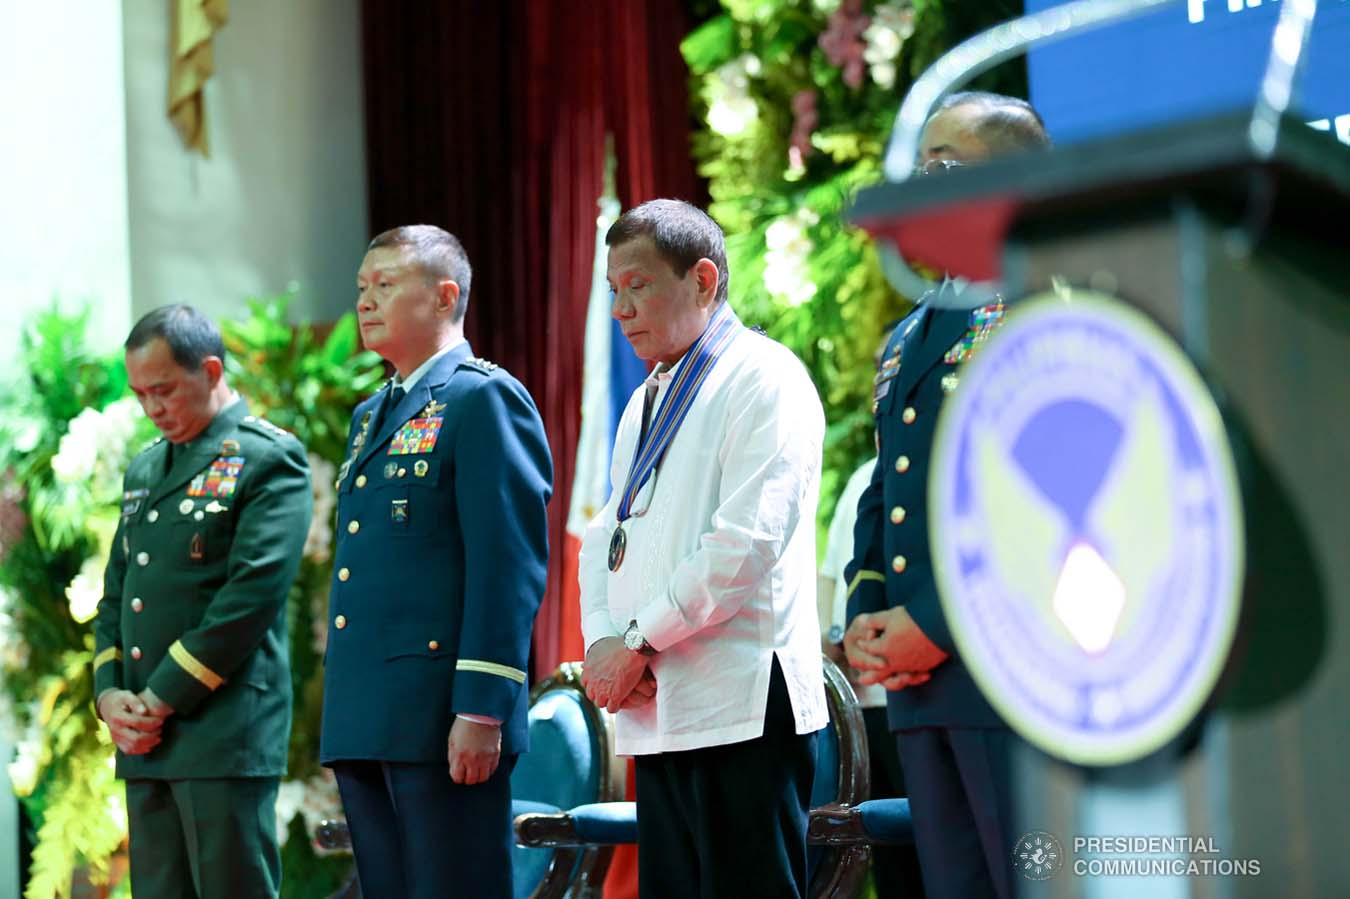 President Rodrigo Roa Duterte bows his head in prayer during the Philippine Air Force Change of Command ceremony at the Col. Jesus Villamor Air Base in Pasay City on January 16, 2020. KARL NORMAN ALONZO/PRESIDENTIAL PHOTO